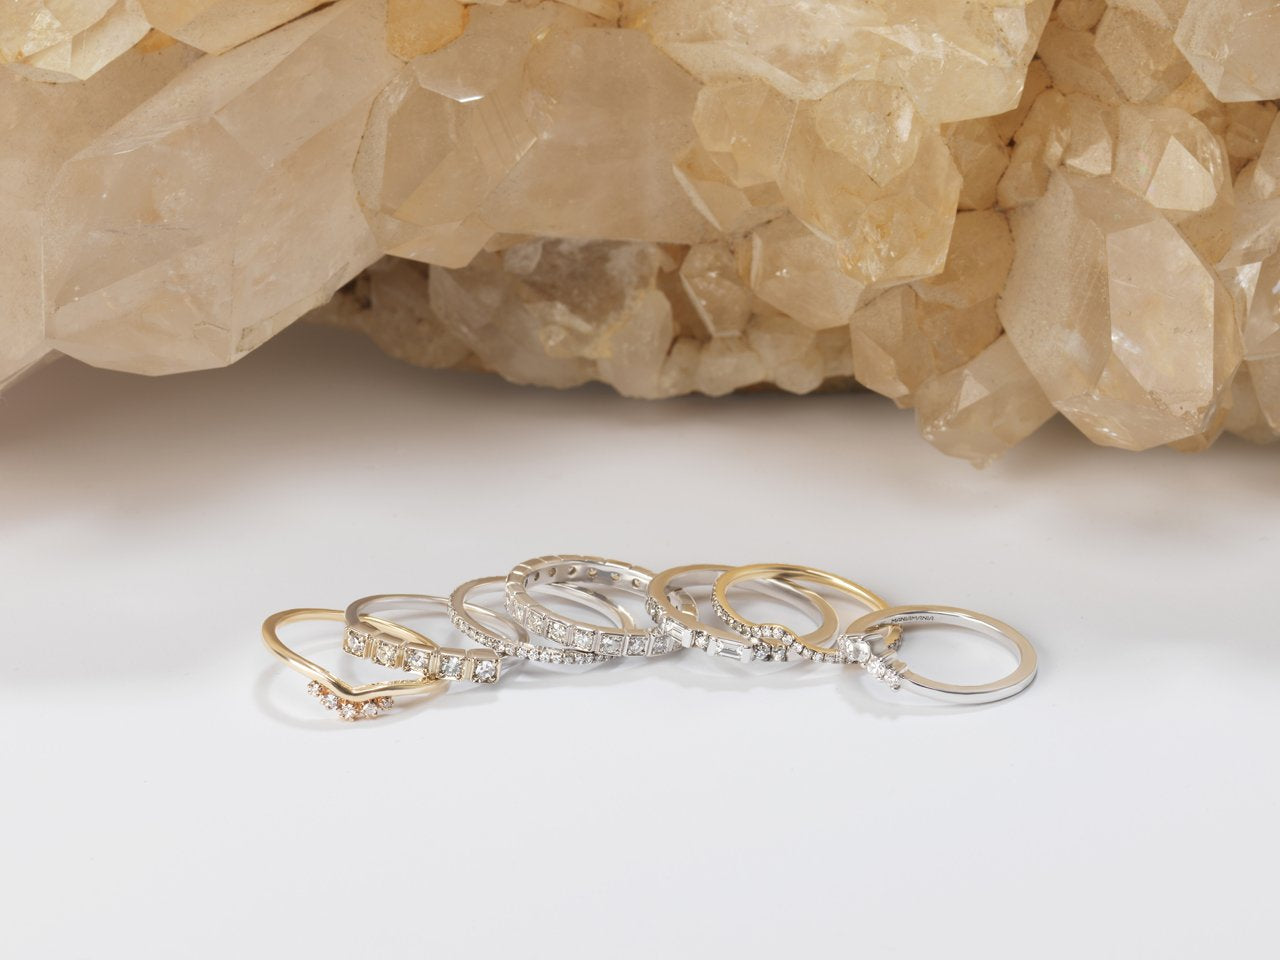 Unity Eternity Band - In Stock Now